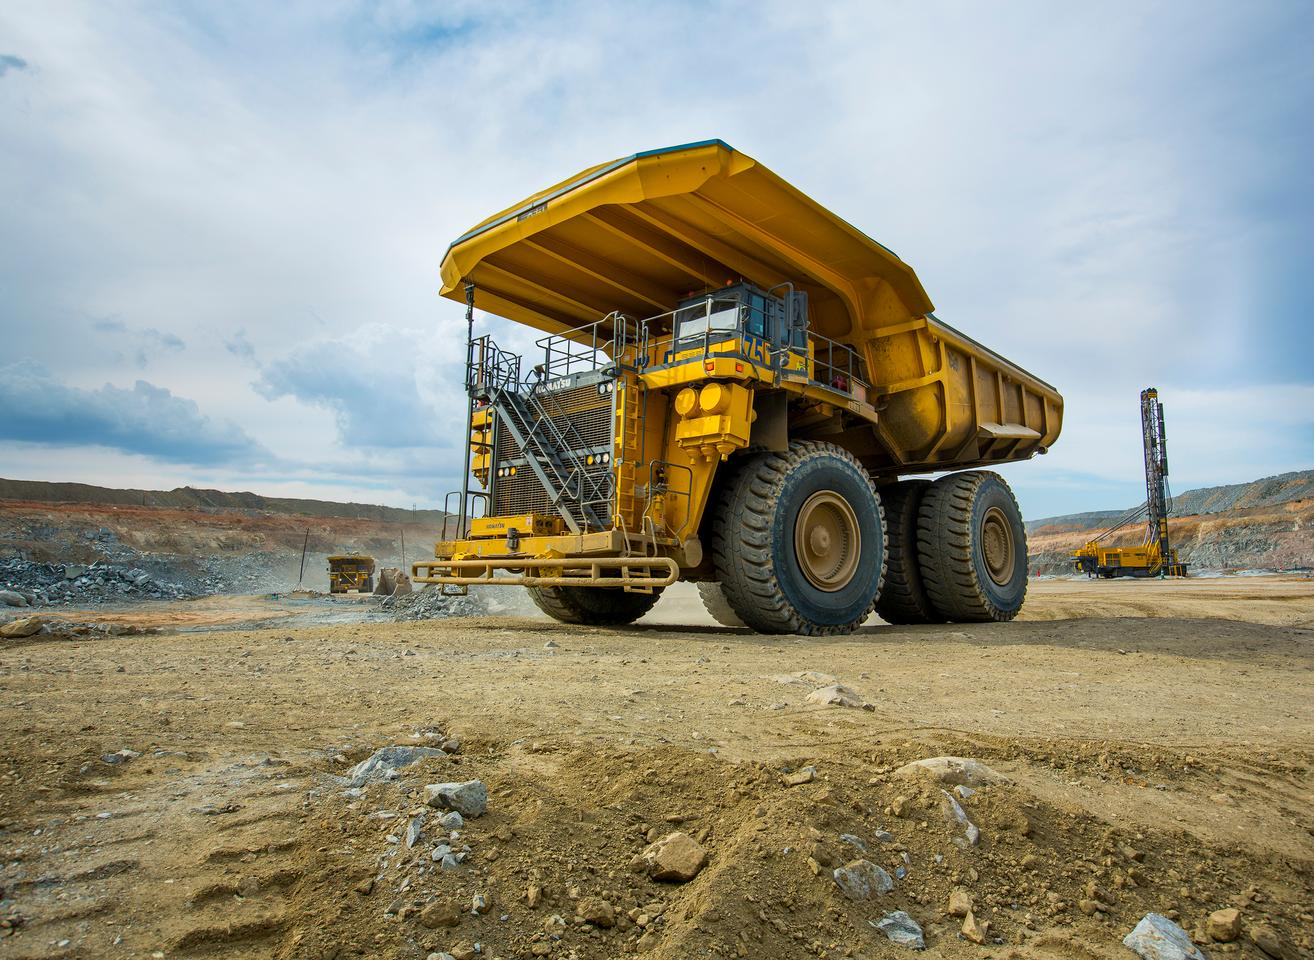 A step toward carbon-neutral mining: this giant mining truck will use a 1,000-kWh battery and a hydrogen fuel cell